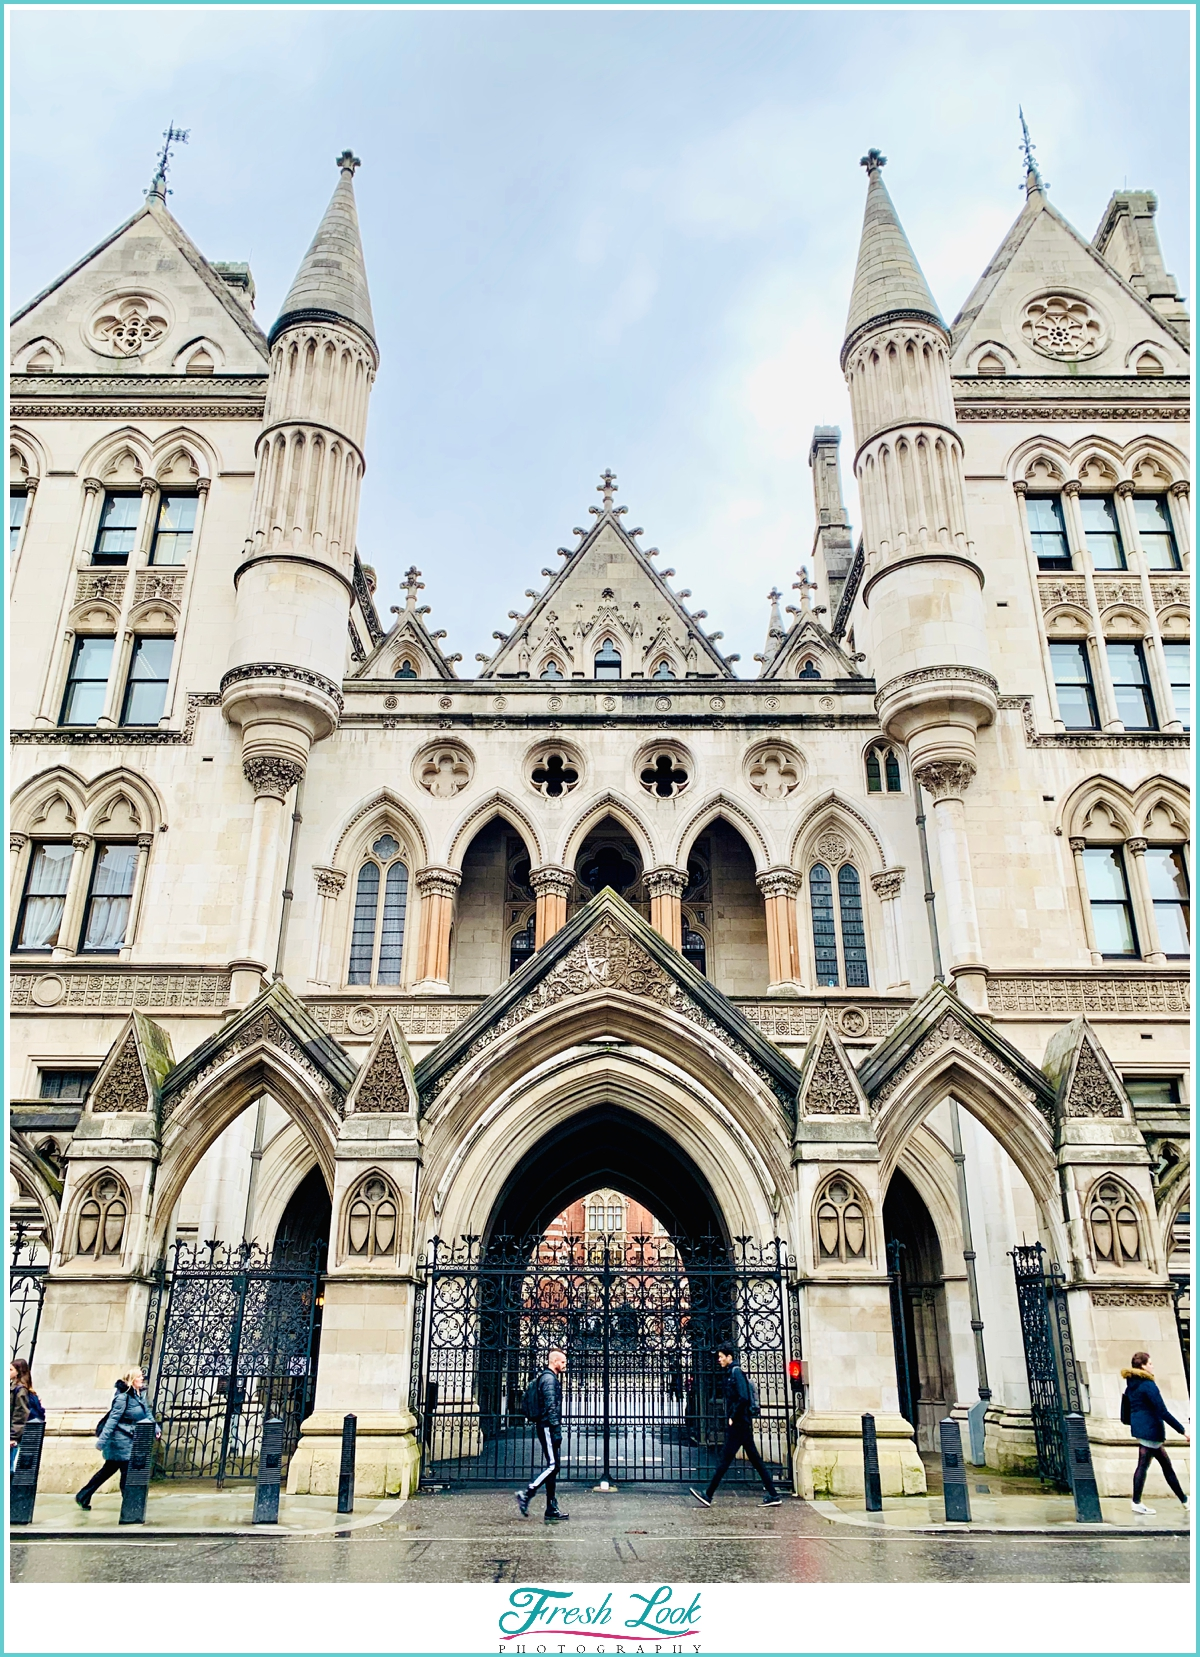 Halls of Justice in England